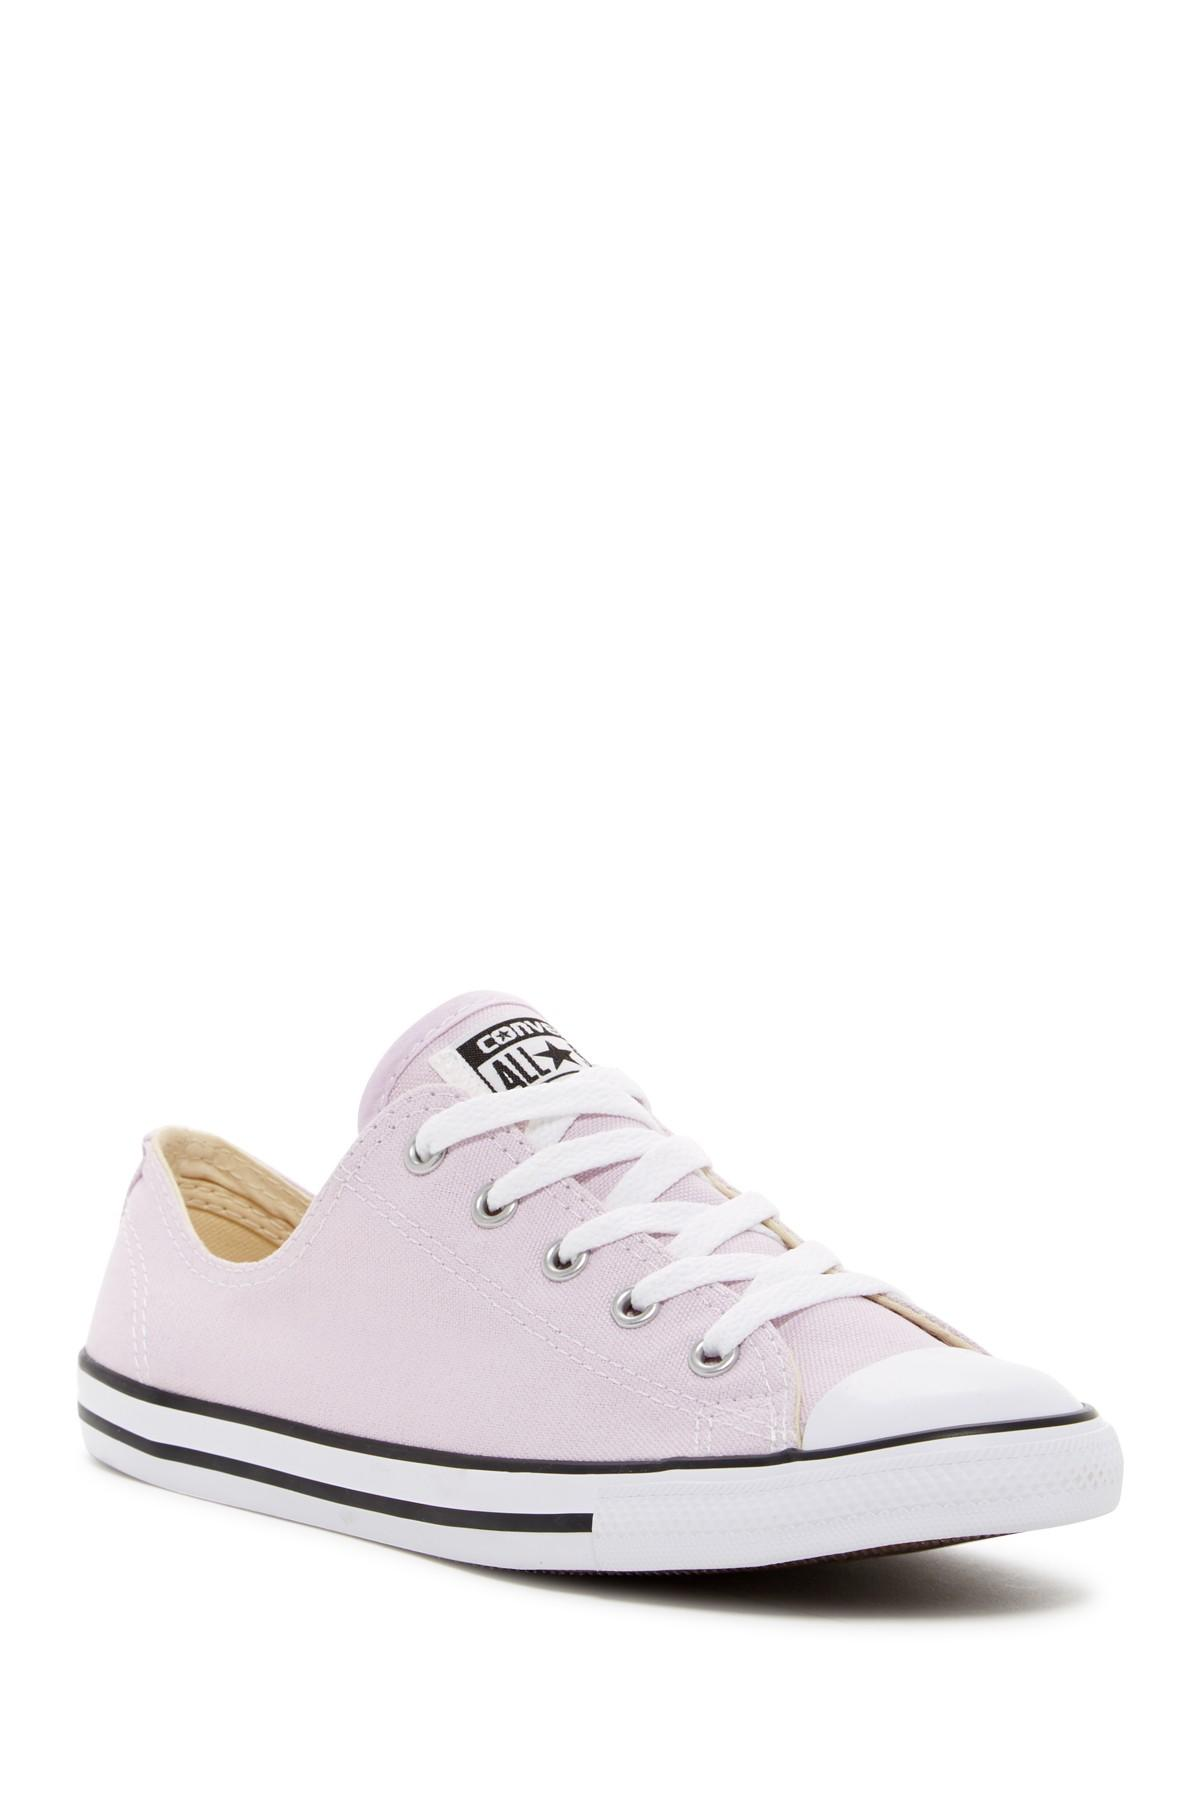 9f0b81fc233fa6 Gallery. Previously sold at  Nordstrom Rack · Women s Converse Chuck Taylor  ...